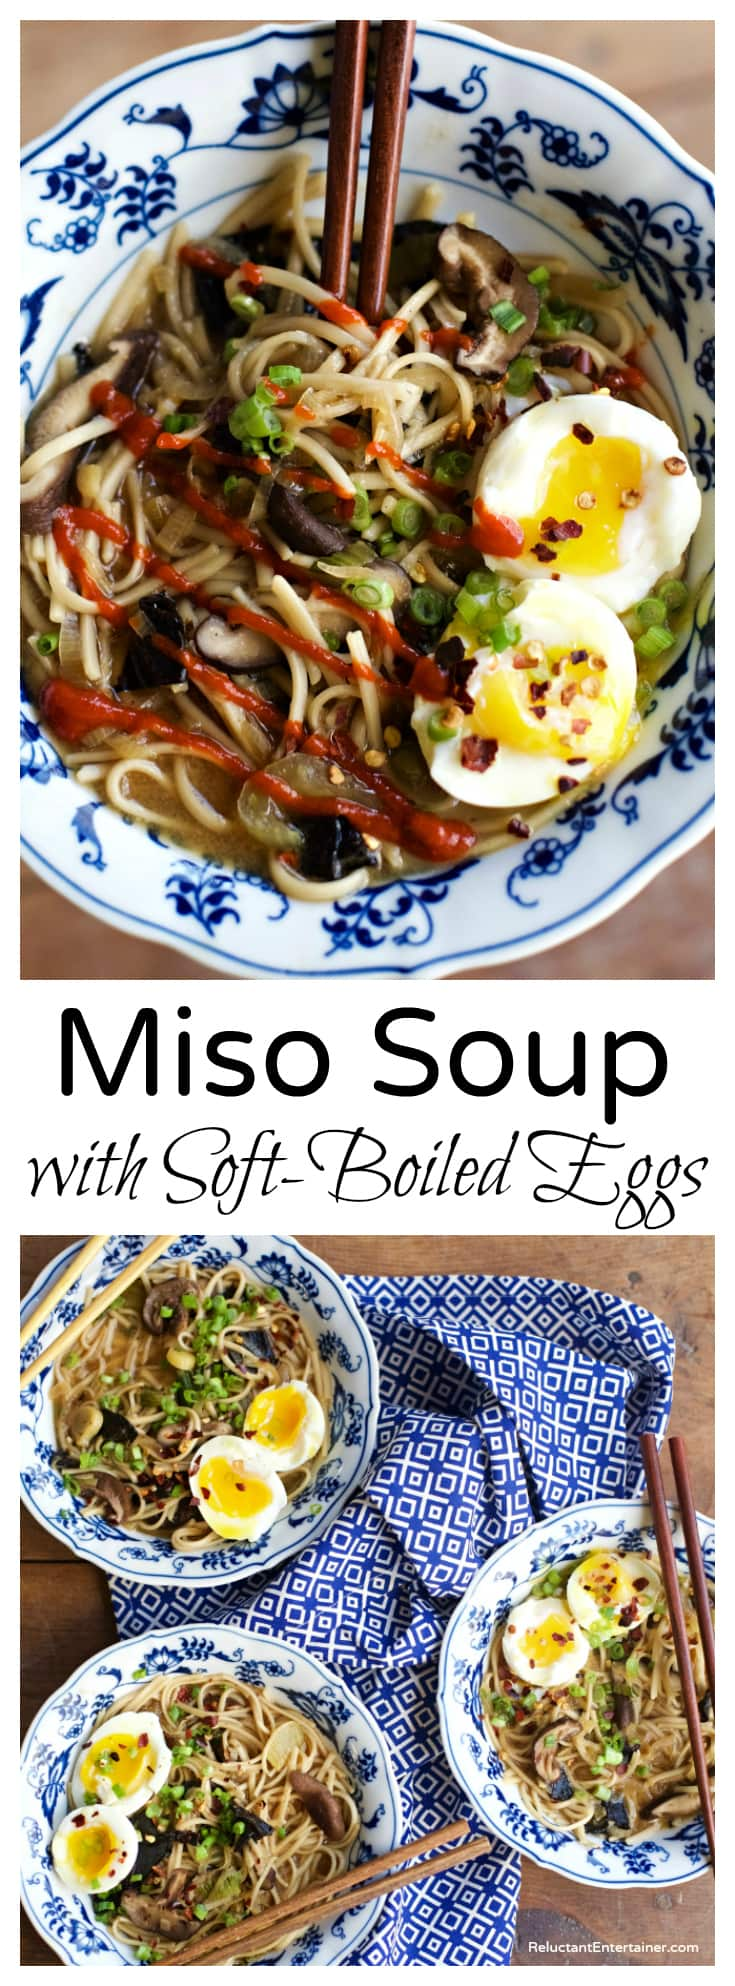 Miso Soup Recipe with Soft-Boiled Eggs